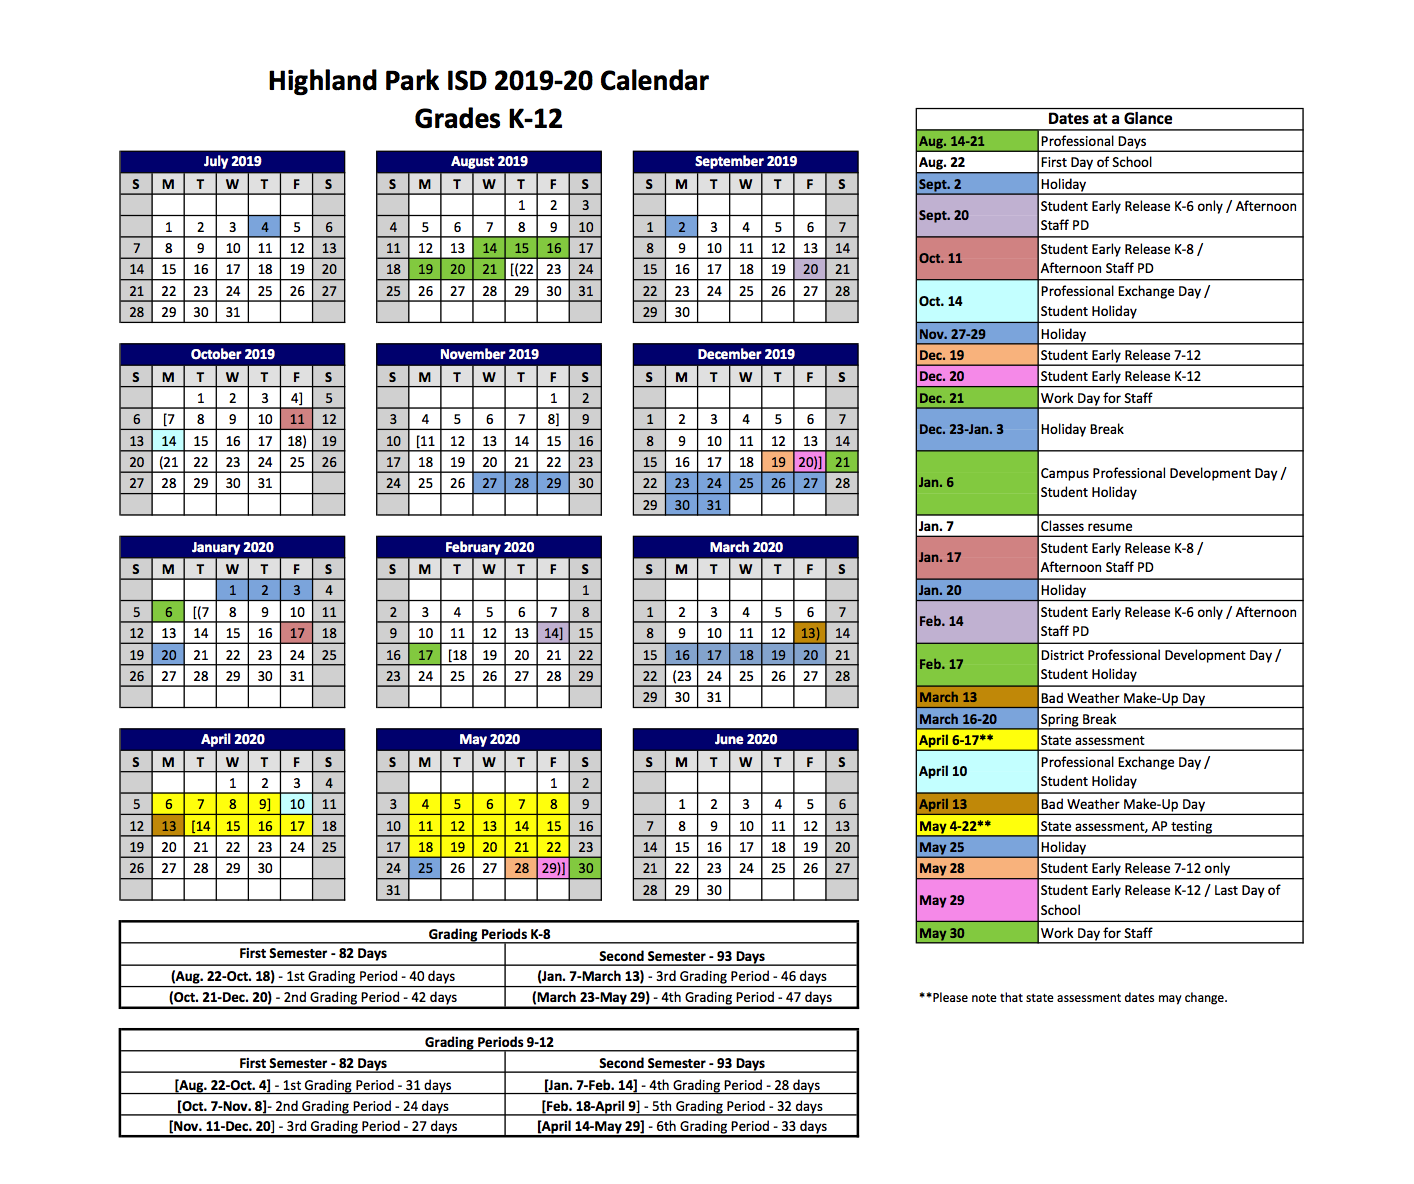 Calendario 3018.2019 2020 Hpisd Calendar Calendars Highland Park